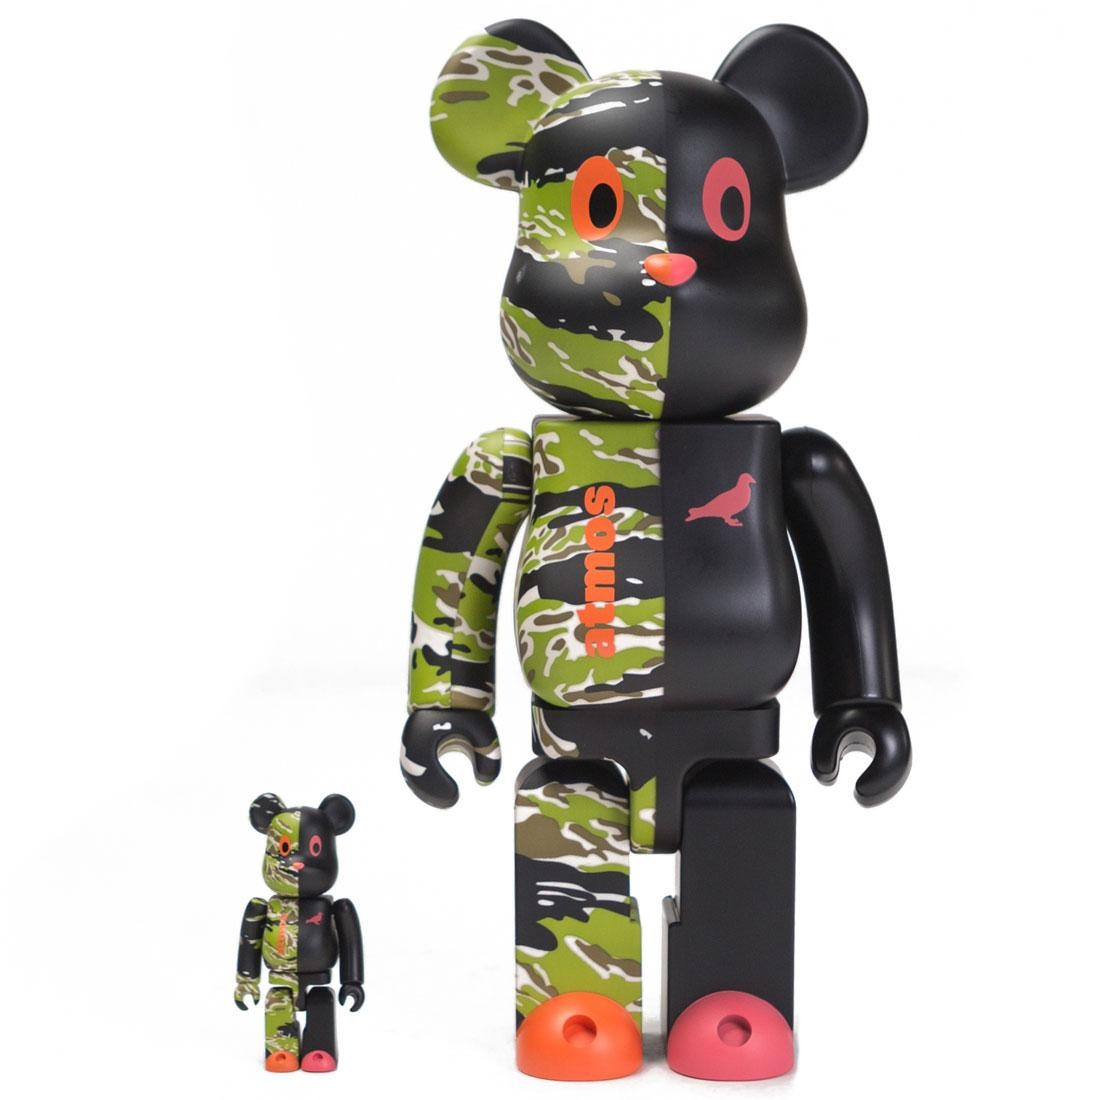 Medicom x Atmos x Staple 100% 400% V2 Bearbrick Figure Set (black)